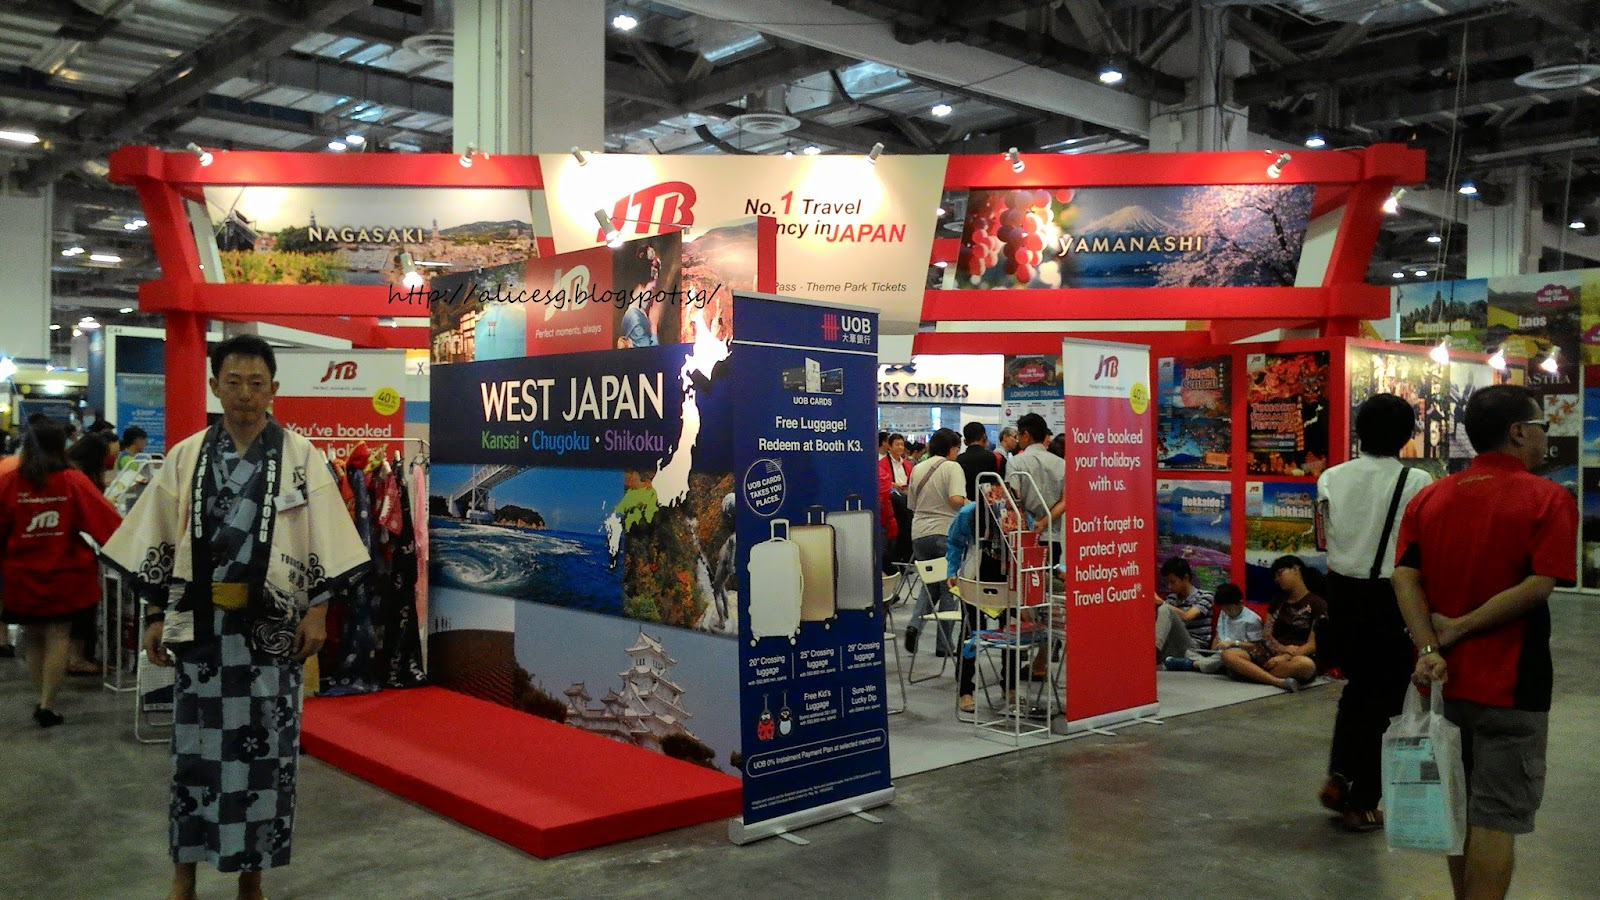 Exhibition Booth Japan : Alicesg singaporemyhome revolution travel fair at